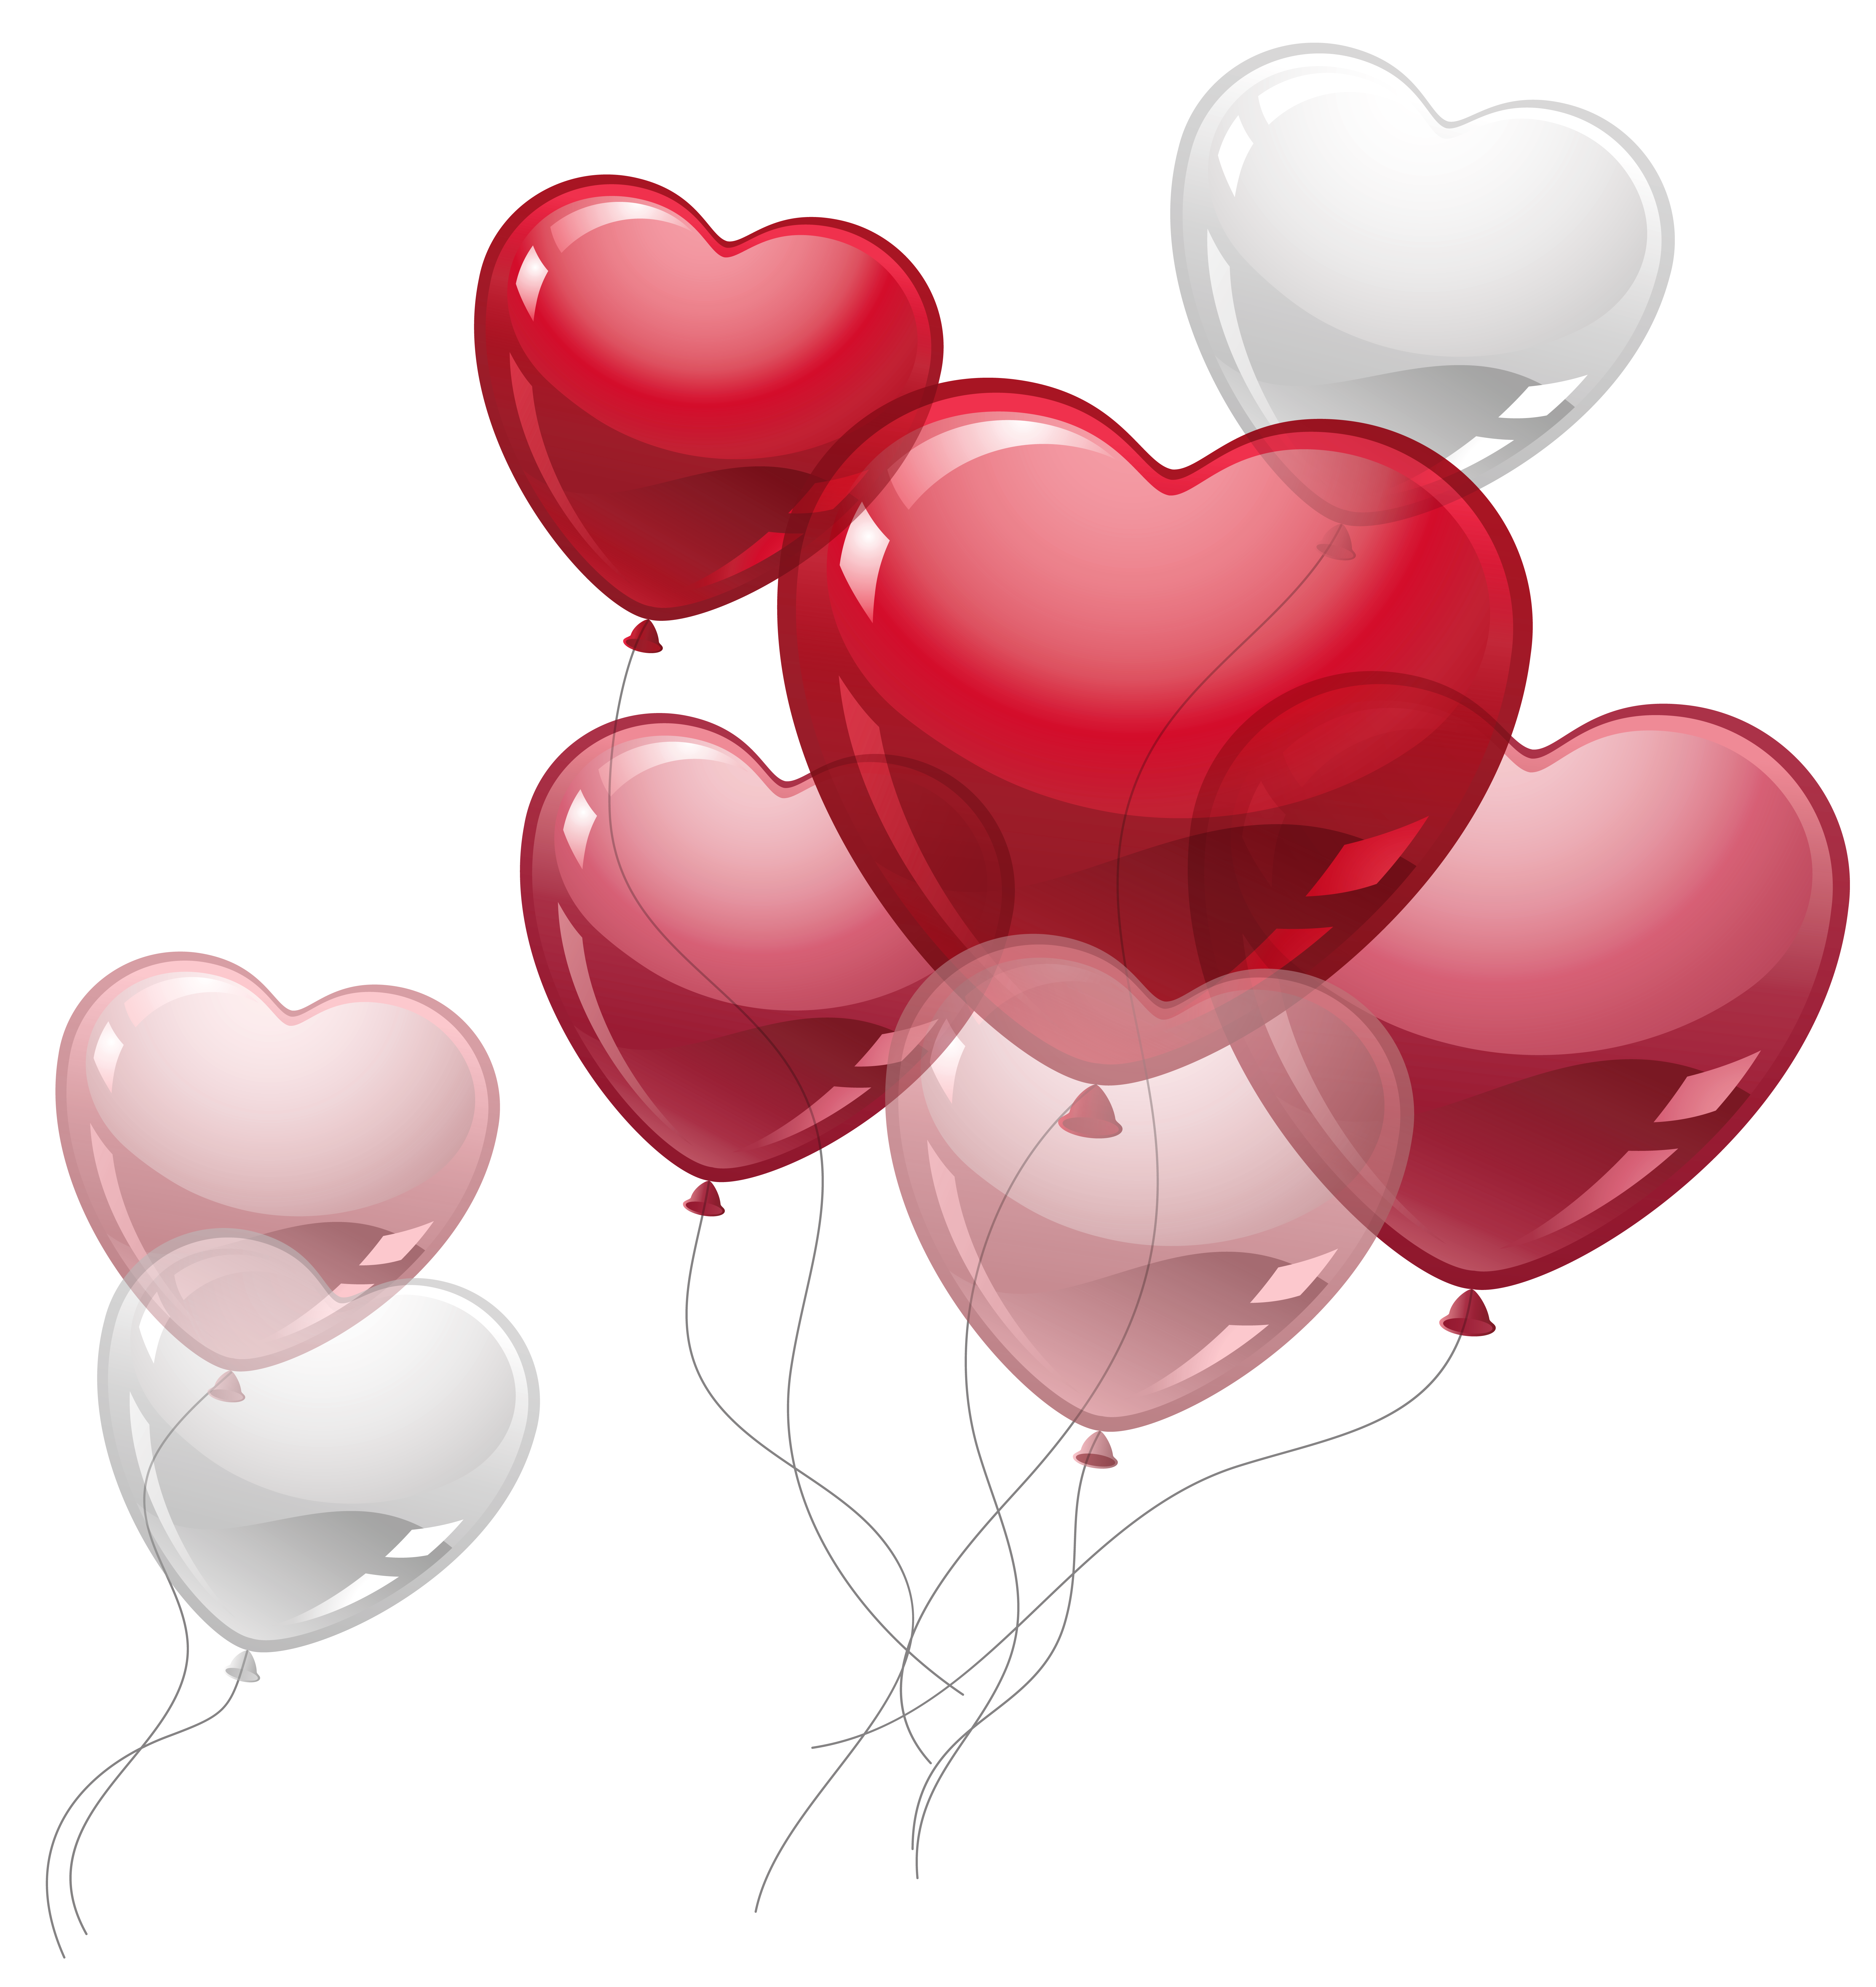 Cute clipart heart picture transparent library Cute Heart Balloons PNG Clipart Picture | Gallery Yopriceville ... picture transparent library